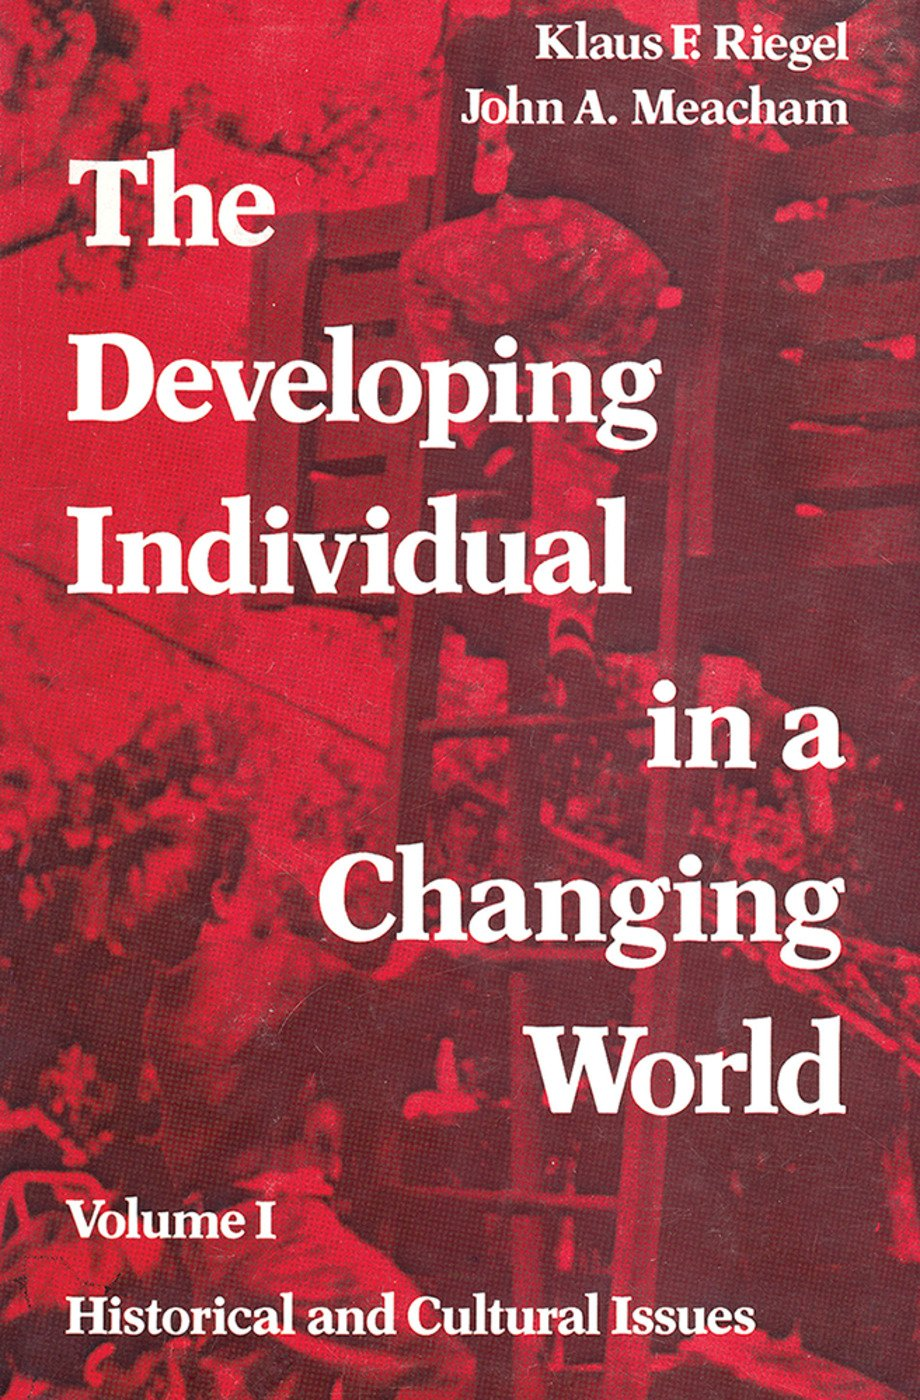 The Developing Individual in a Changing World